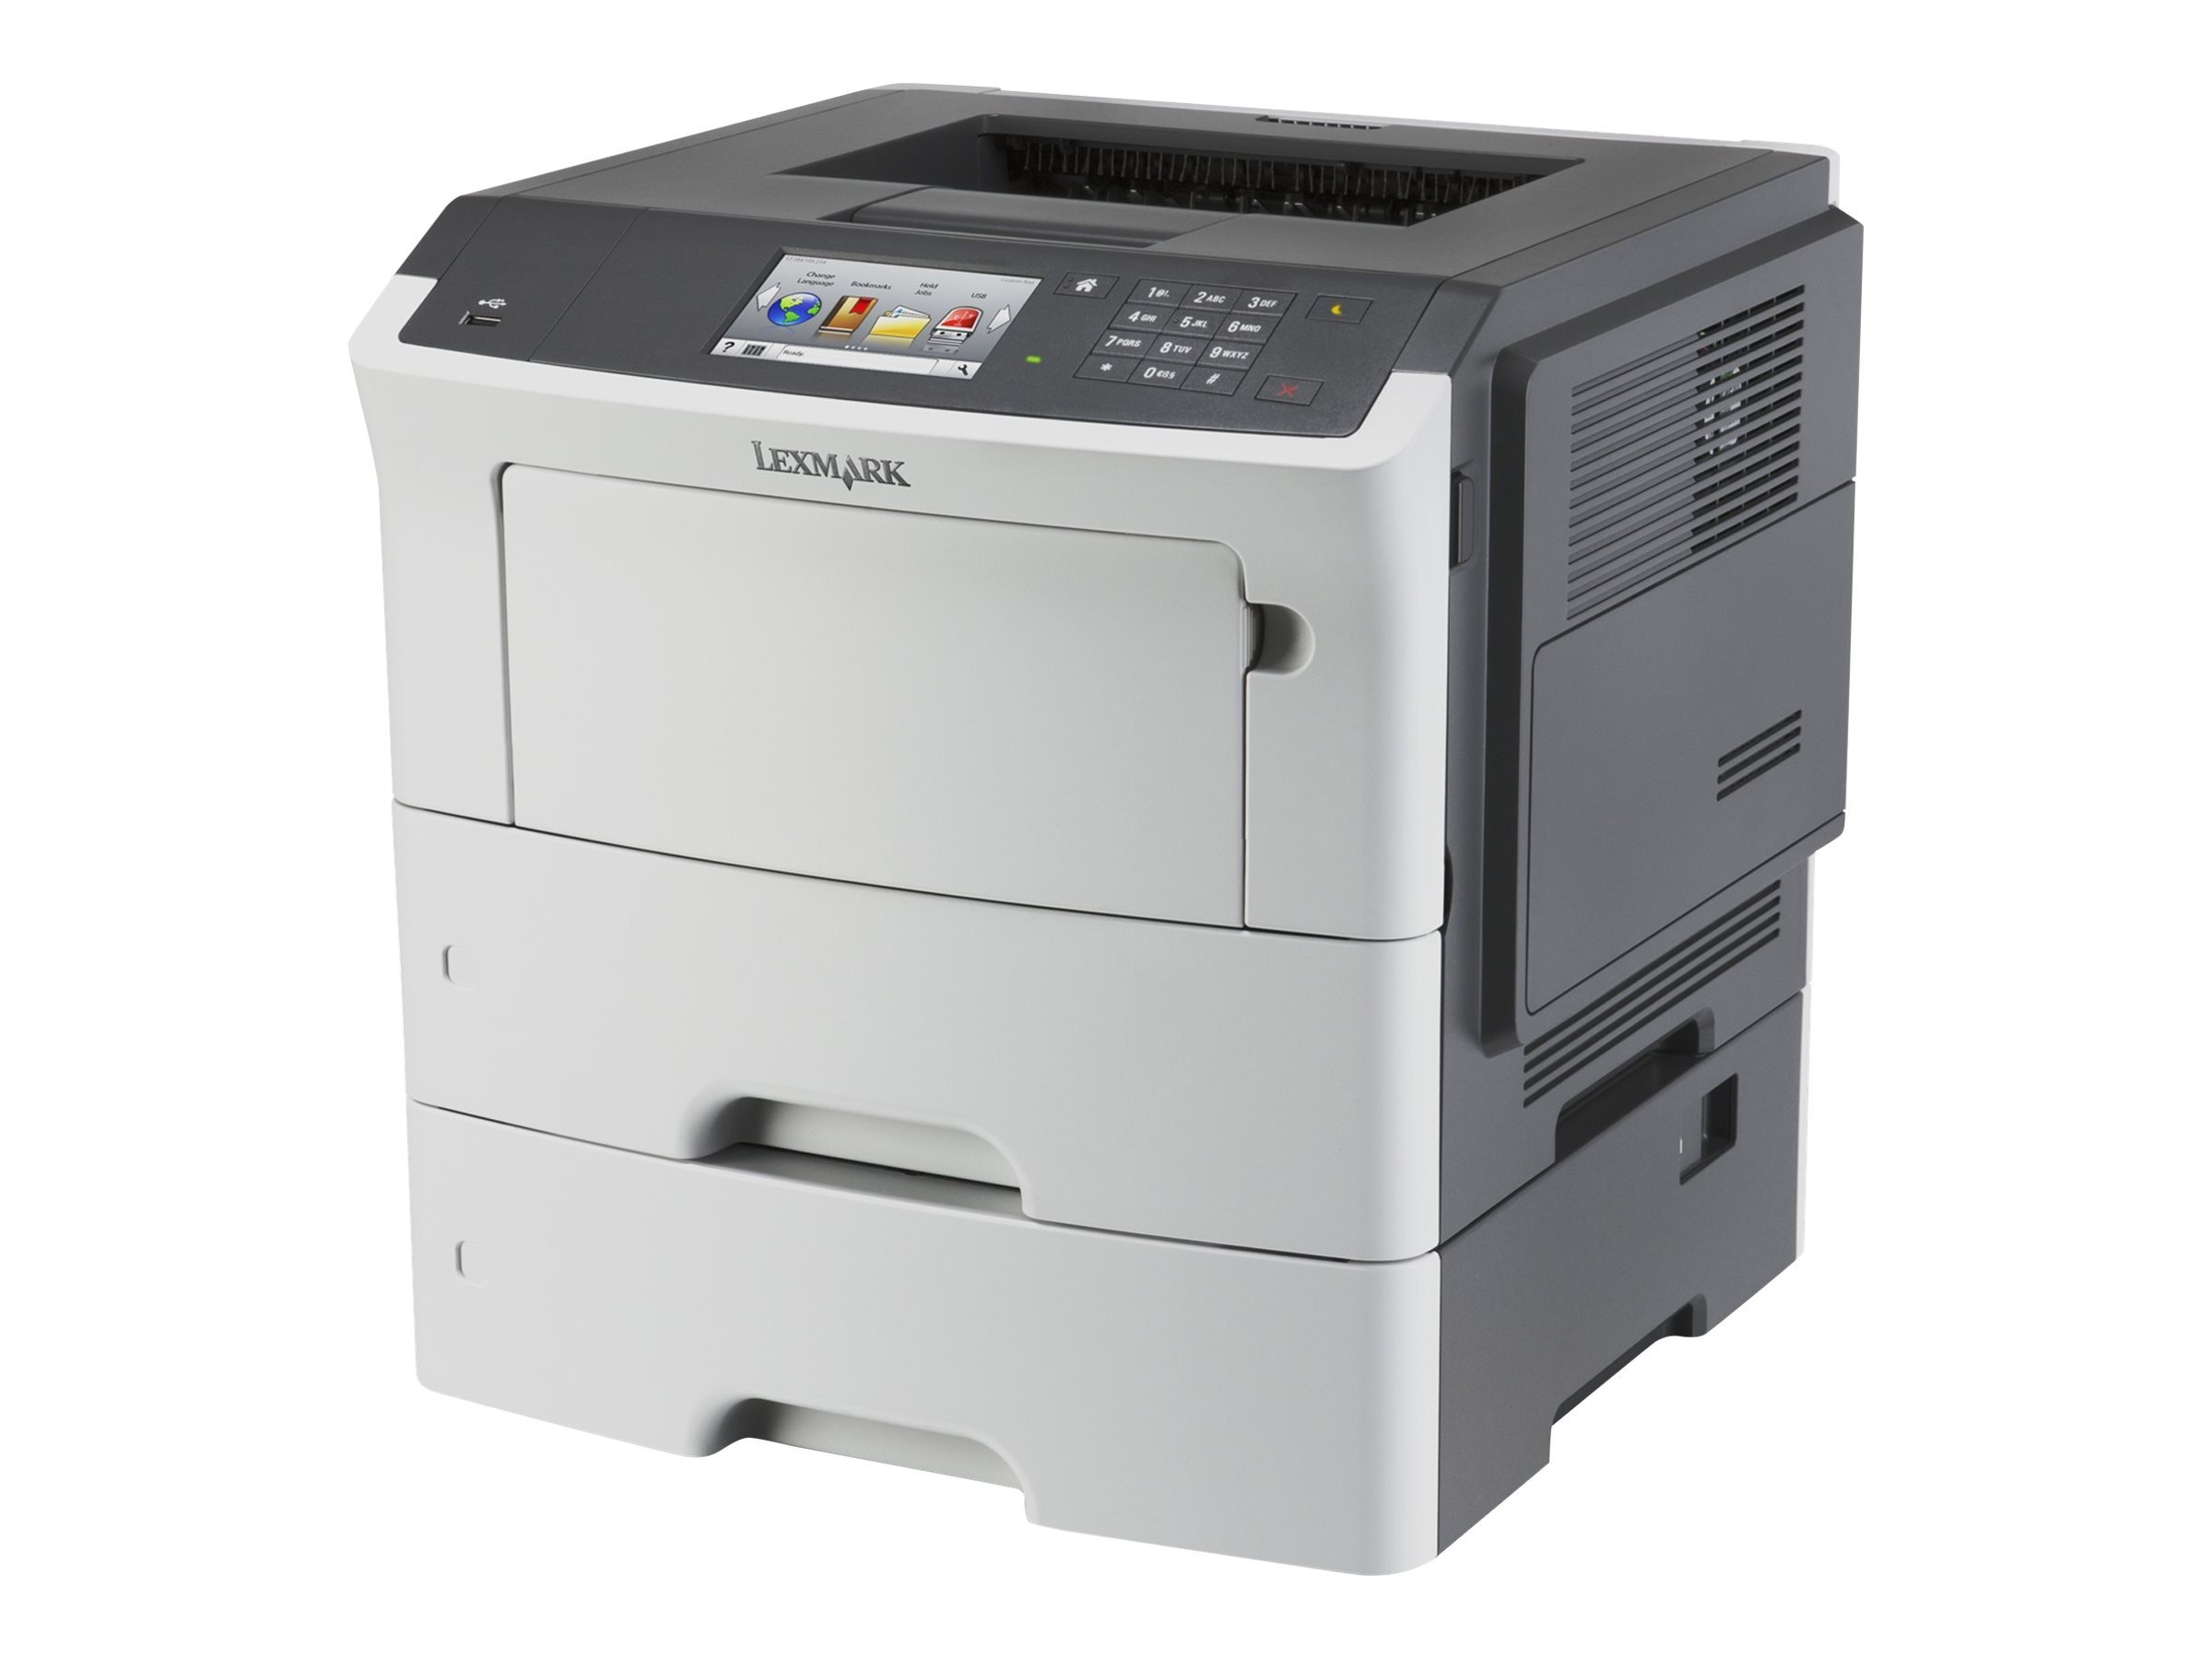 Lexmark MS610dte Monochrome Laser Printer - CAC Enabled (TAA Compliant)